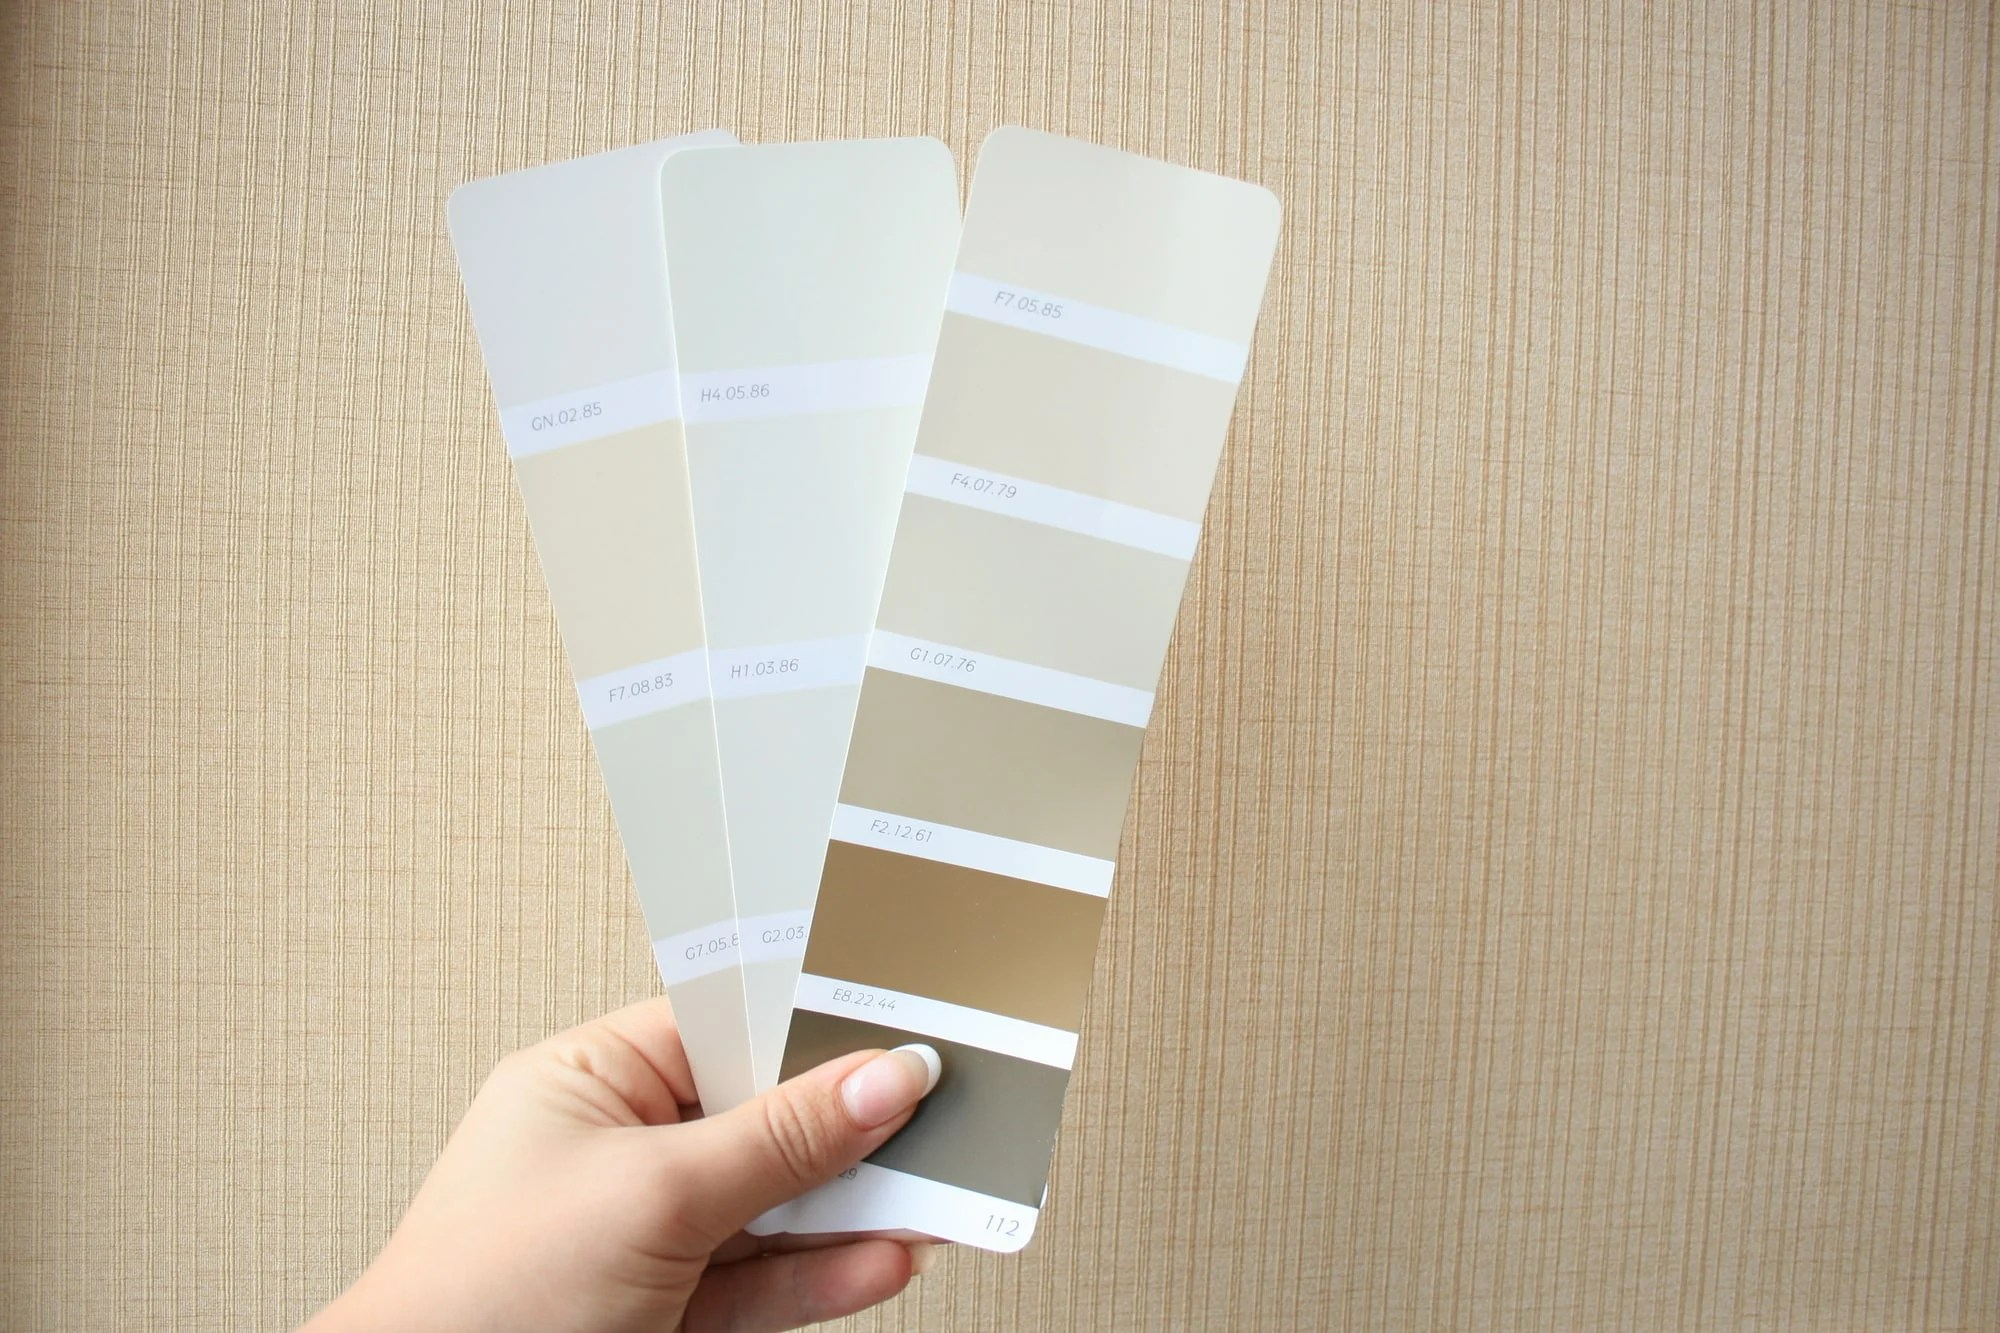 Paint chips to help pick a color scheme when decorating the living room